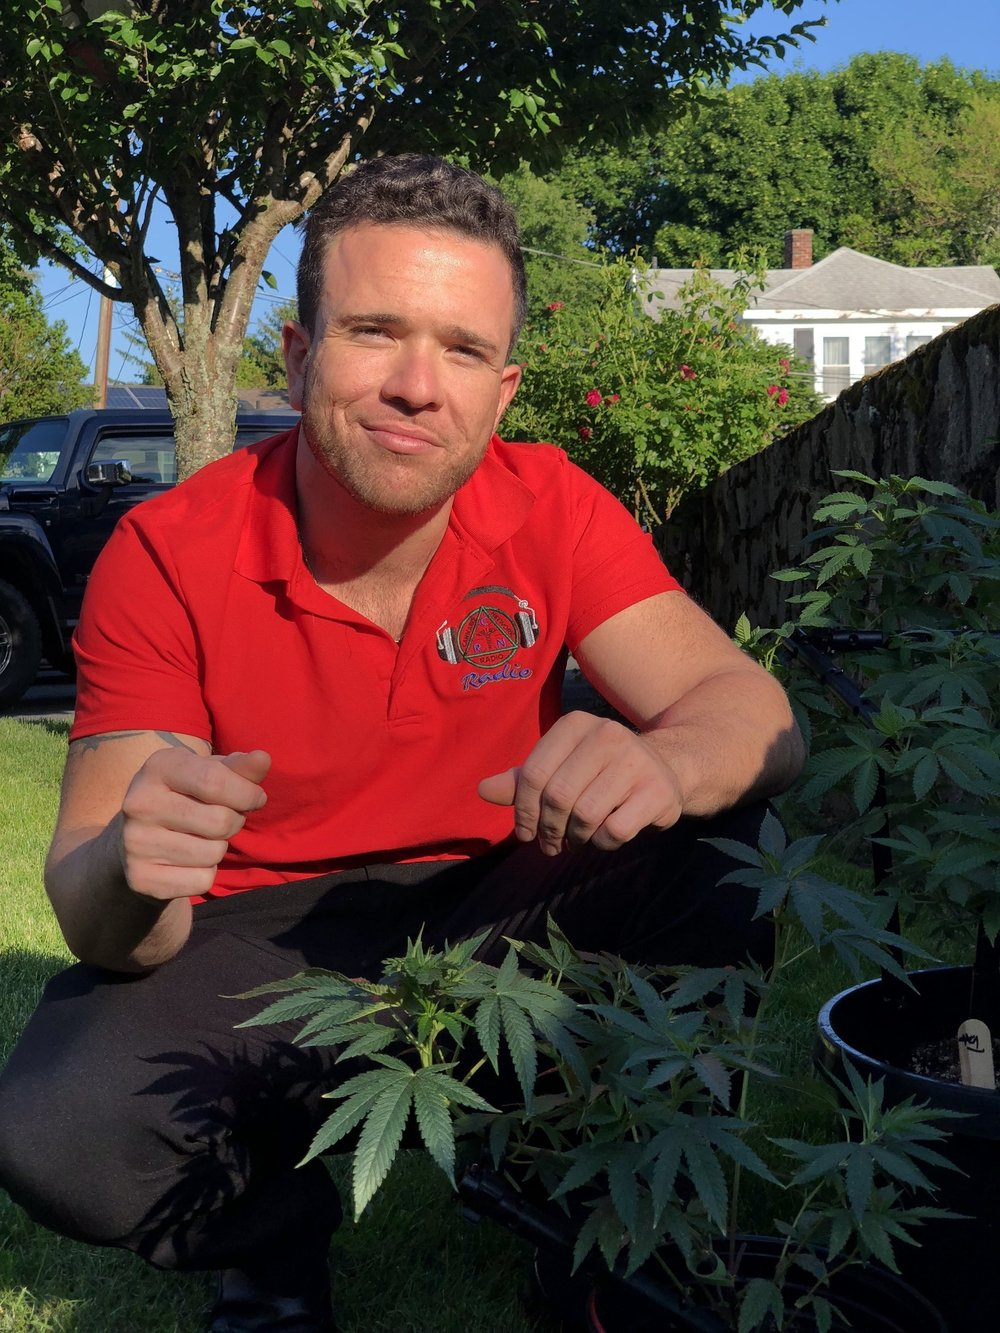 The Average Joe Grow Show, TUESDAYS @ 7pm Eastern - If you're a grower or you want to start. You will love THE AVERAGE JOE GROW show. hosted by Jake Ganem. Learn all the tips, techniques and secrets to grow marijuana.The AVERAGE JOE GROW show is for both beginners and more seasoned growers you'll get tons of tips and other advice ensuring you grow the best buds possible. Our expert growers will be taking calls and answering your questionsFind out all you need to know from how to setup your marijuana grow room, choose lights and germinate seeds to harvesting and curing your buds.